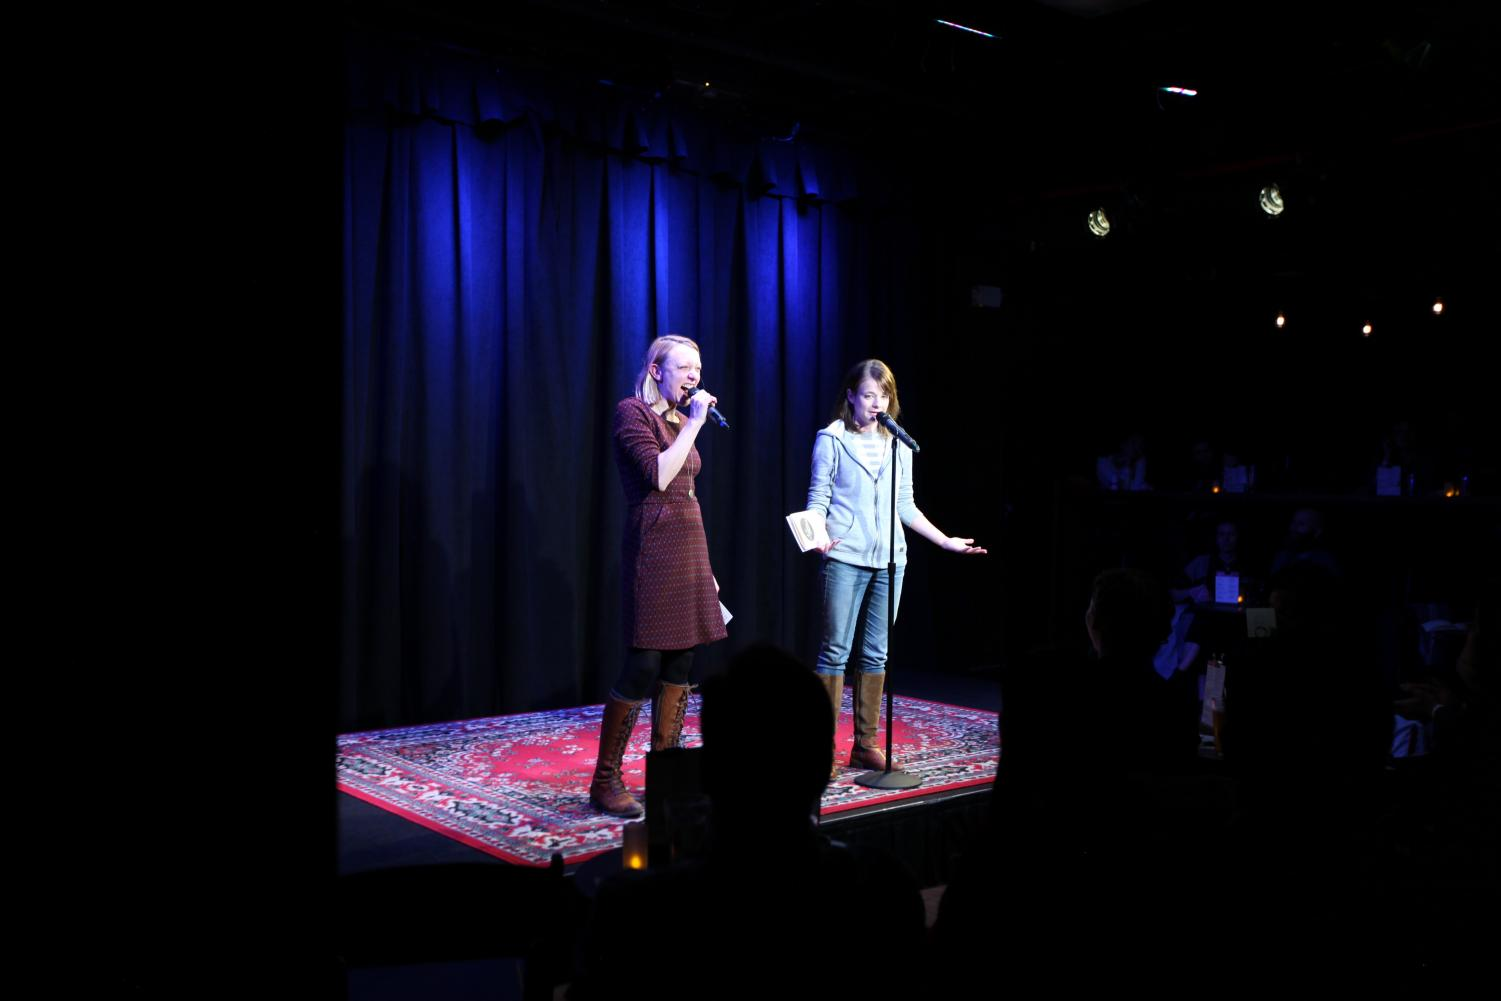 Paula Croxson (left) and Erin Barker (right) warm up the crowds before the first set of storytellers.